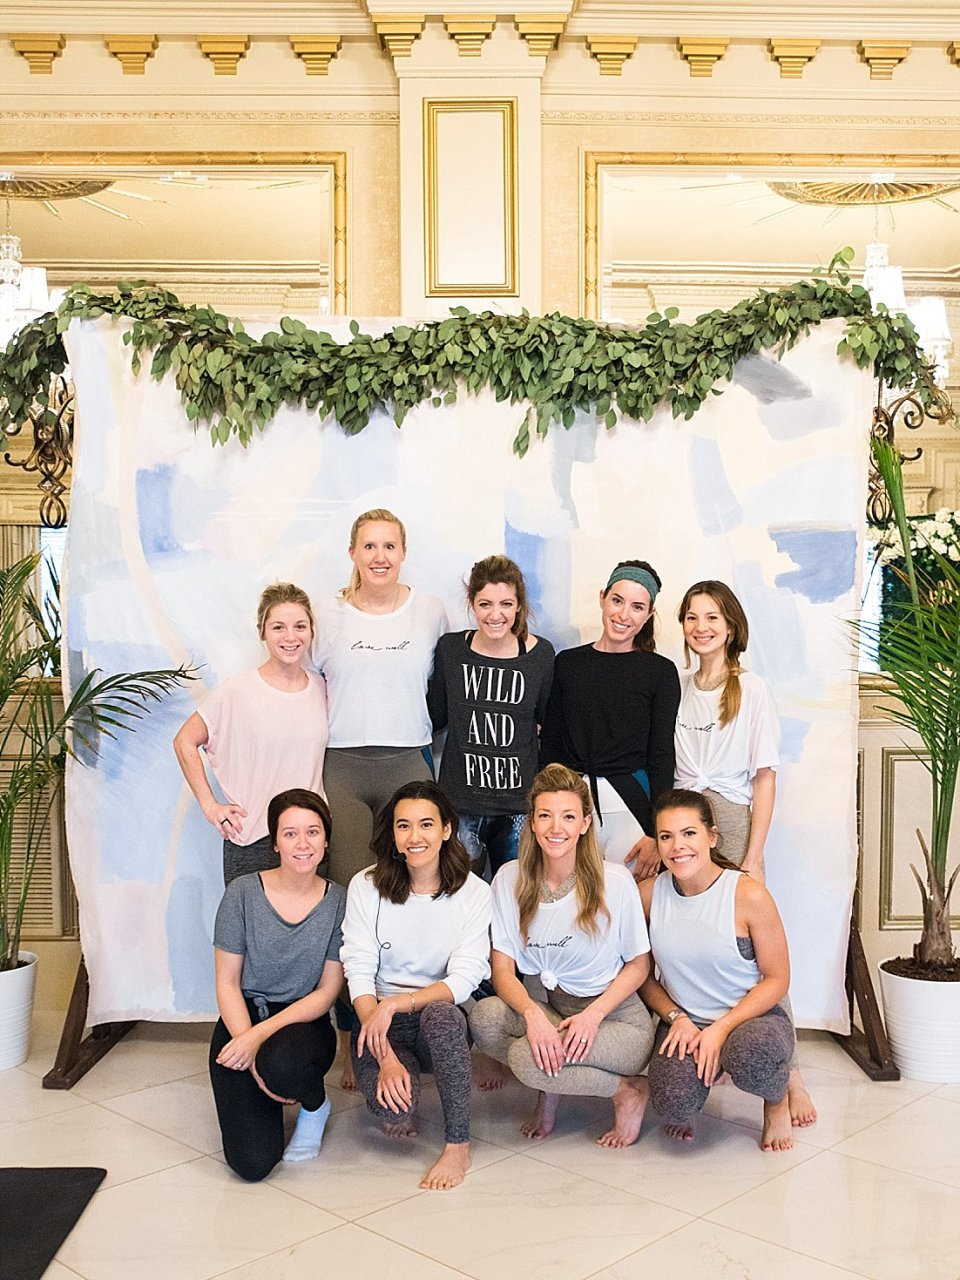 The Joyful Influencer retreat at the kentucky castle Instagram influencer event yoga class